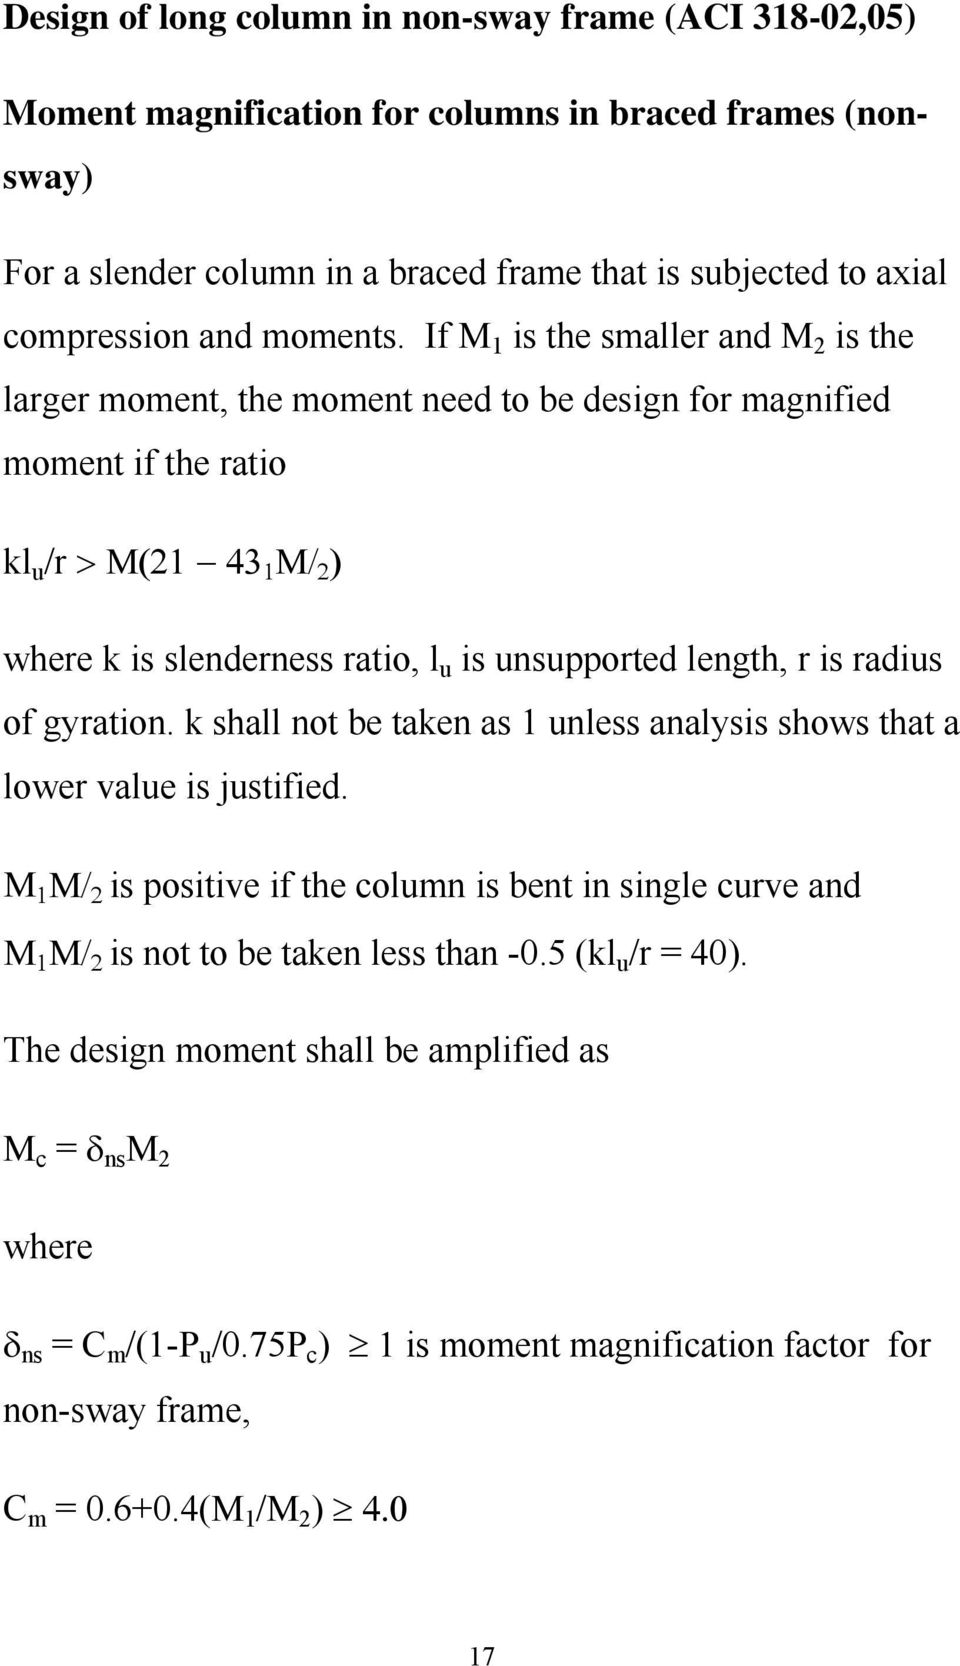 If M 1 is the smaller and M 2 is the larger moment, the moment need to be design for magnified moment if the ratio kl u /r > Μ(21 43 1 Μ/ 2 ) where k is slenderness ratio, l u is unsupported length,